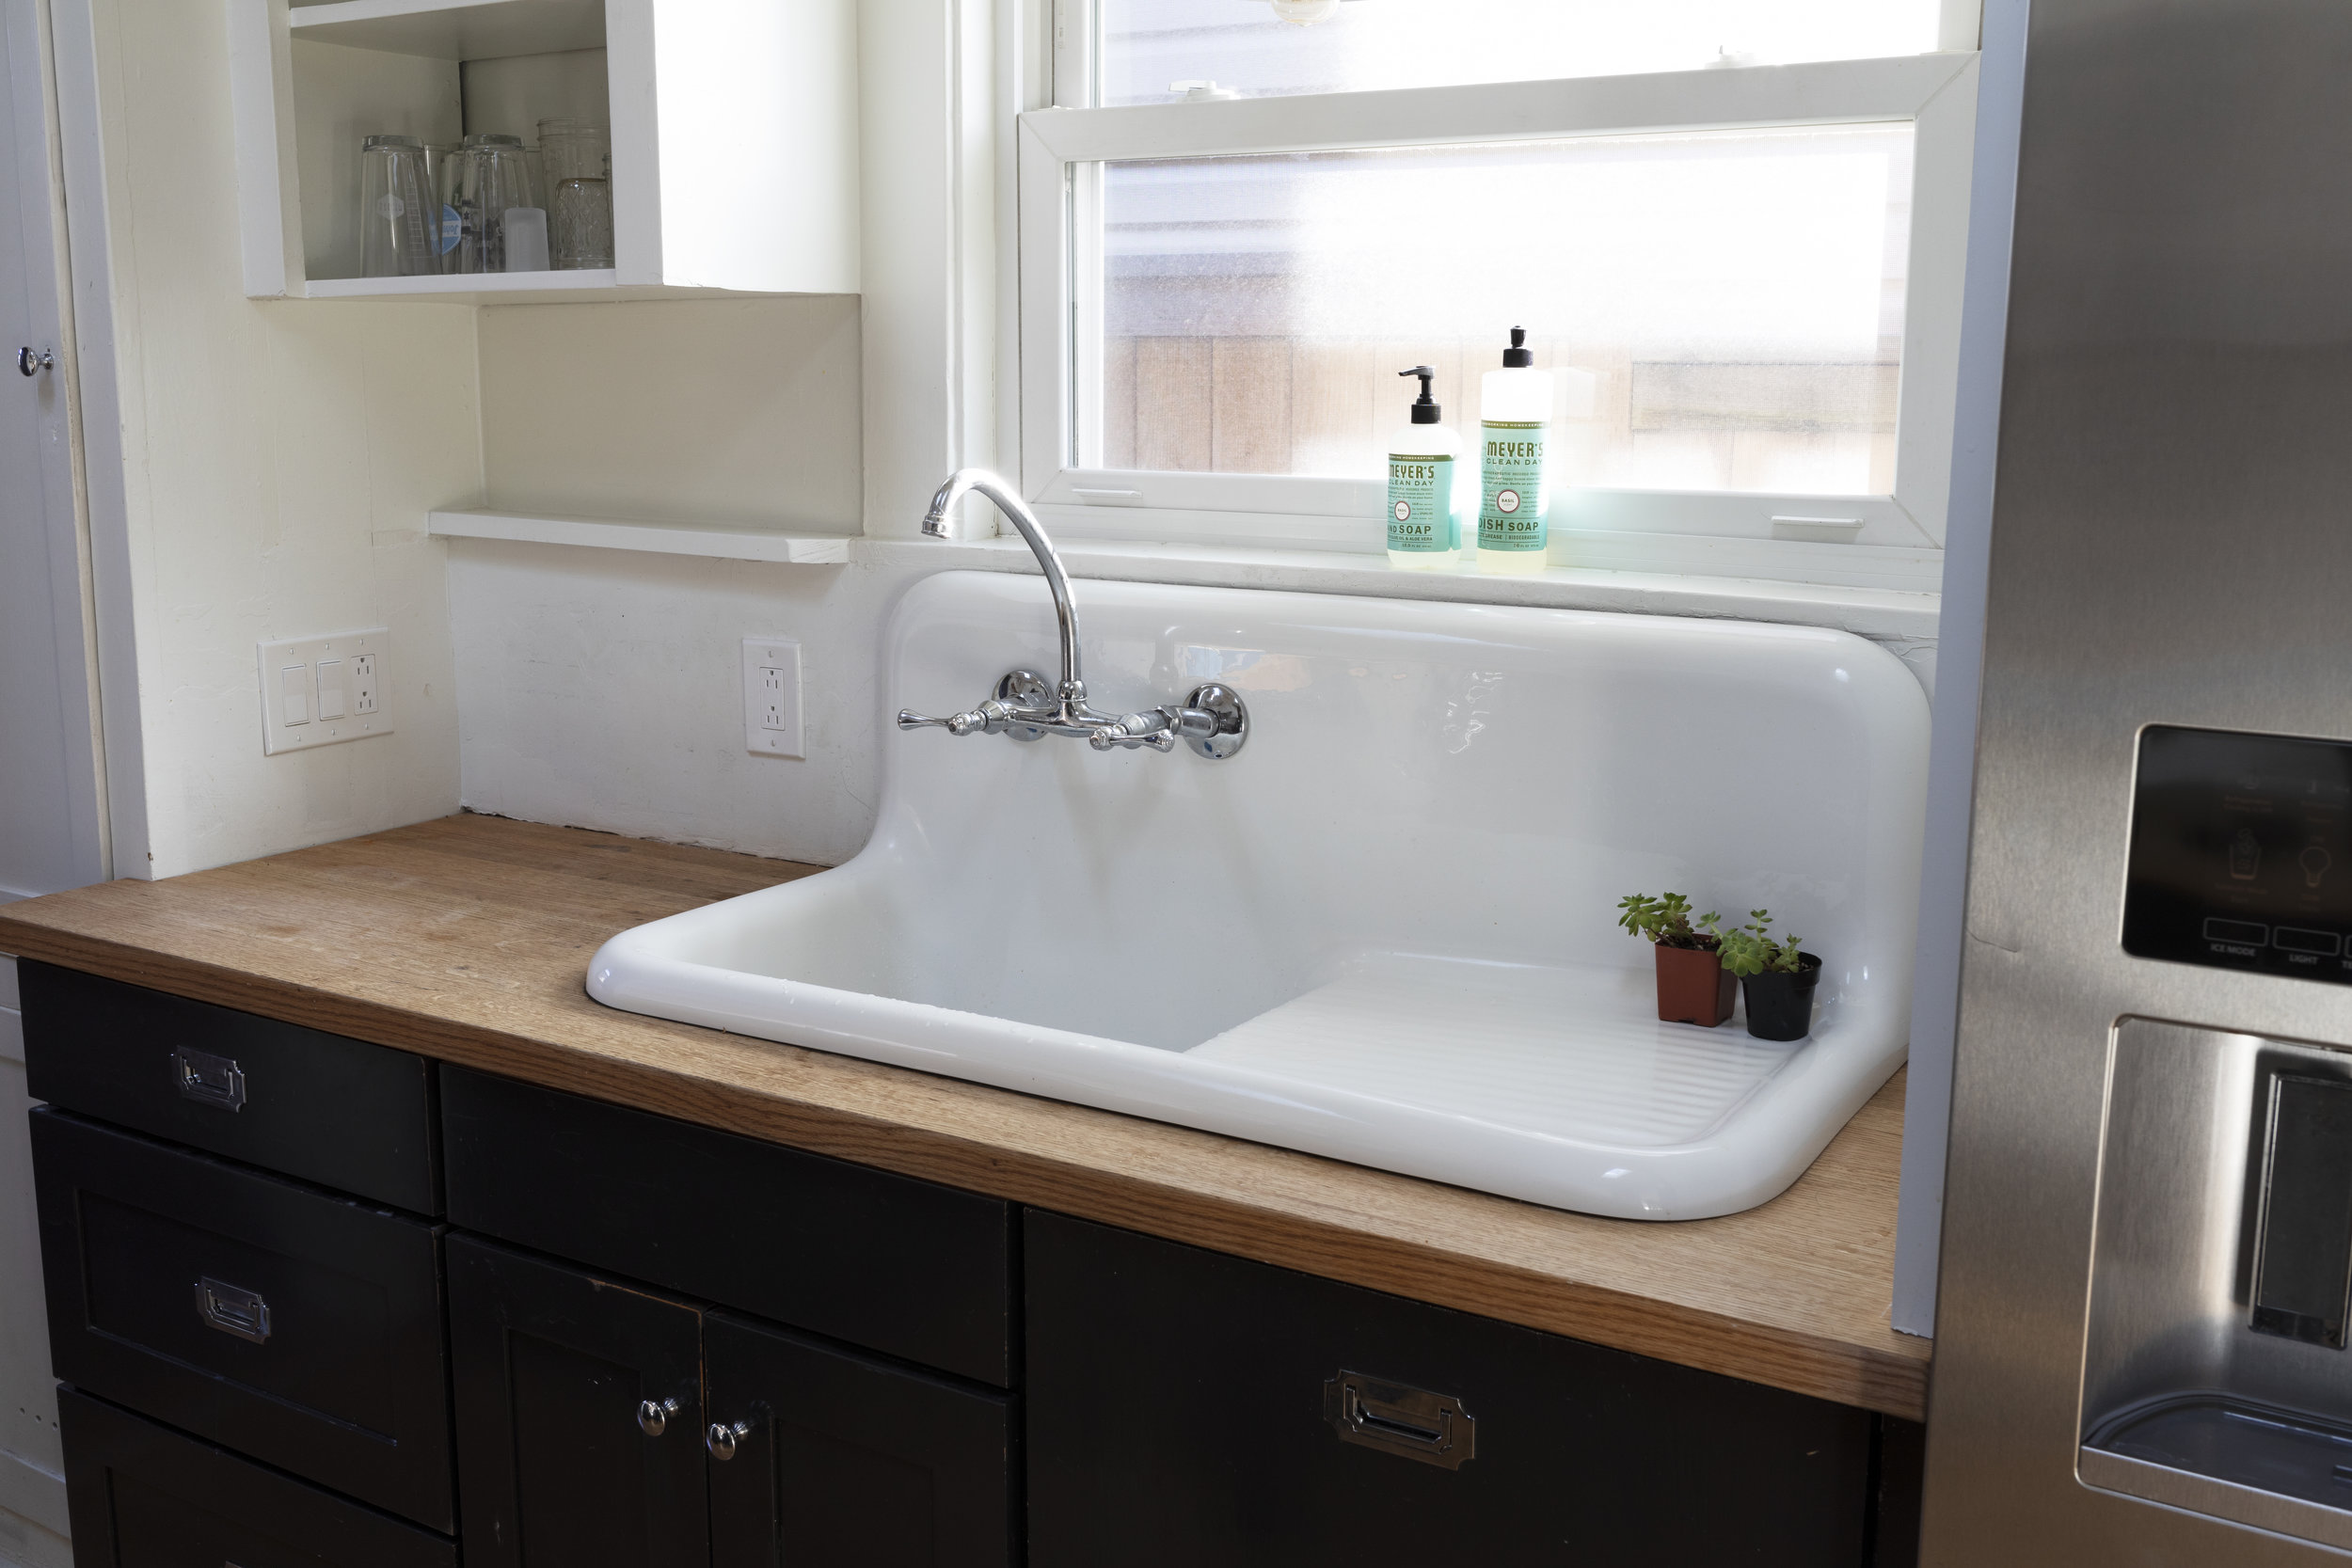 The Grit and Polish - Dexter Kitchen Sink Angle BEFORE.jpg